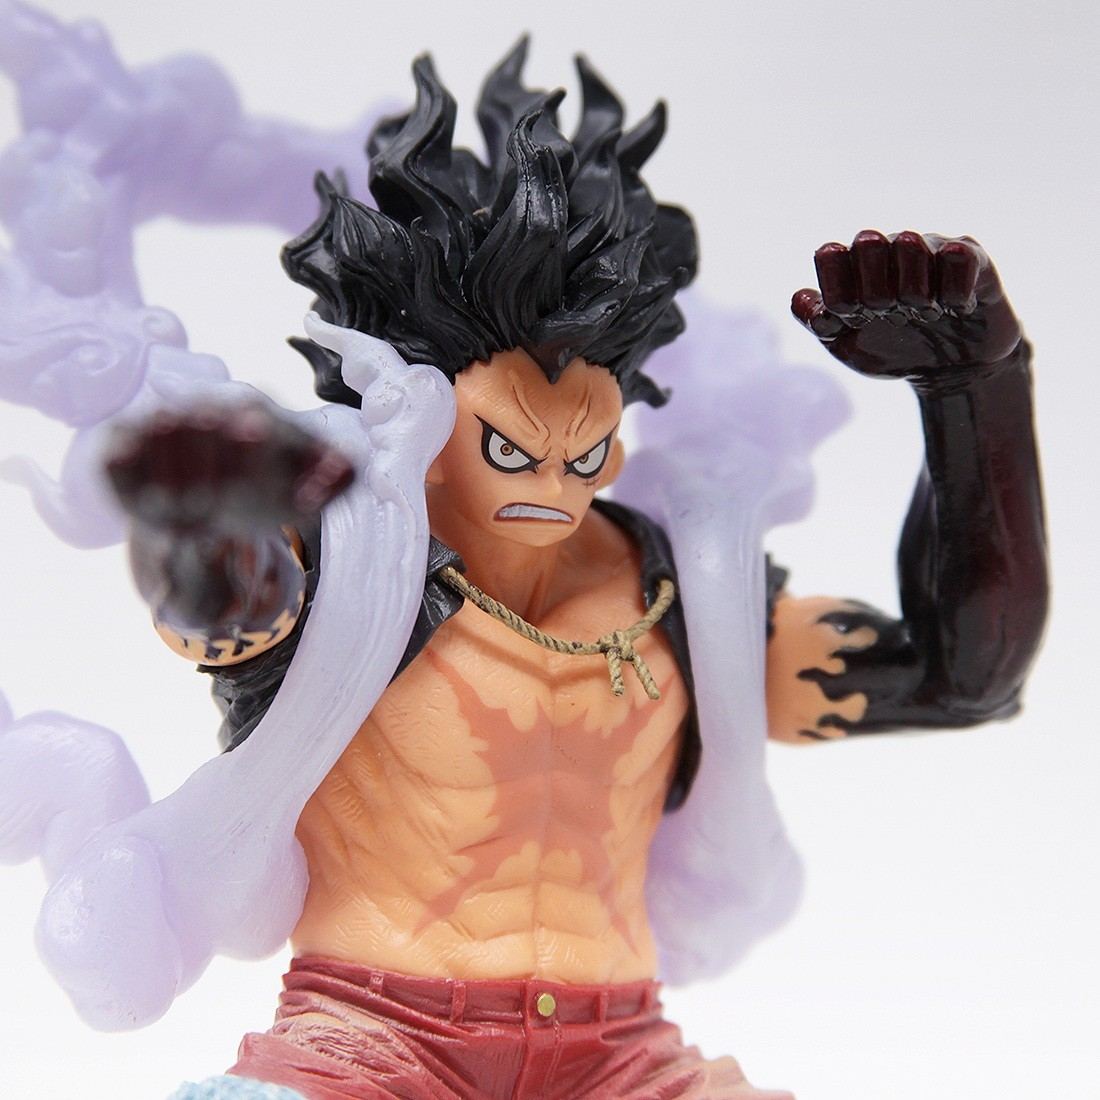 One Piece Monkey D Luffy Action Figure 1/8 scale painted